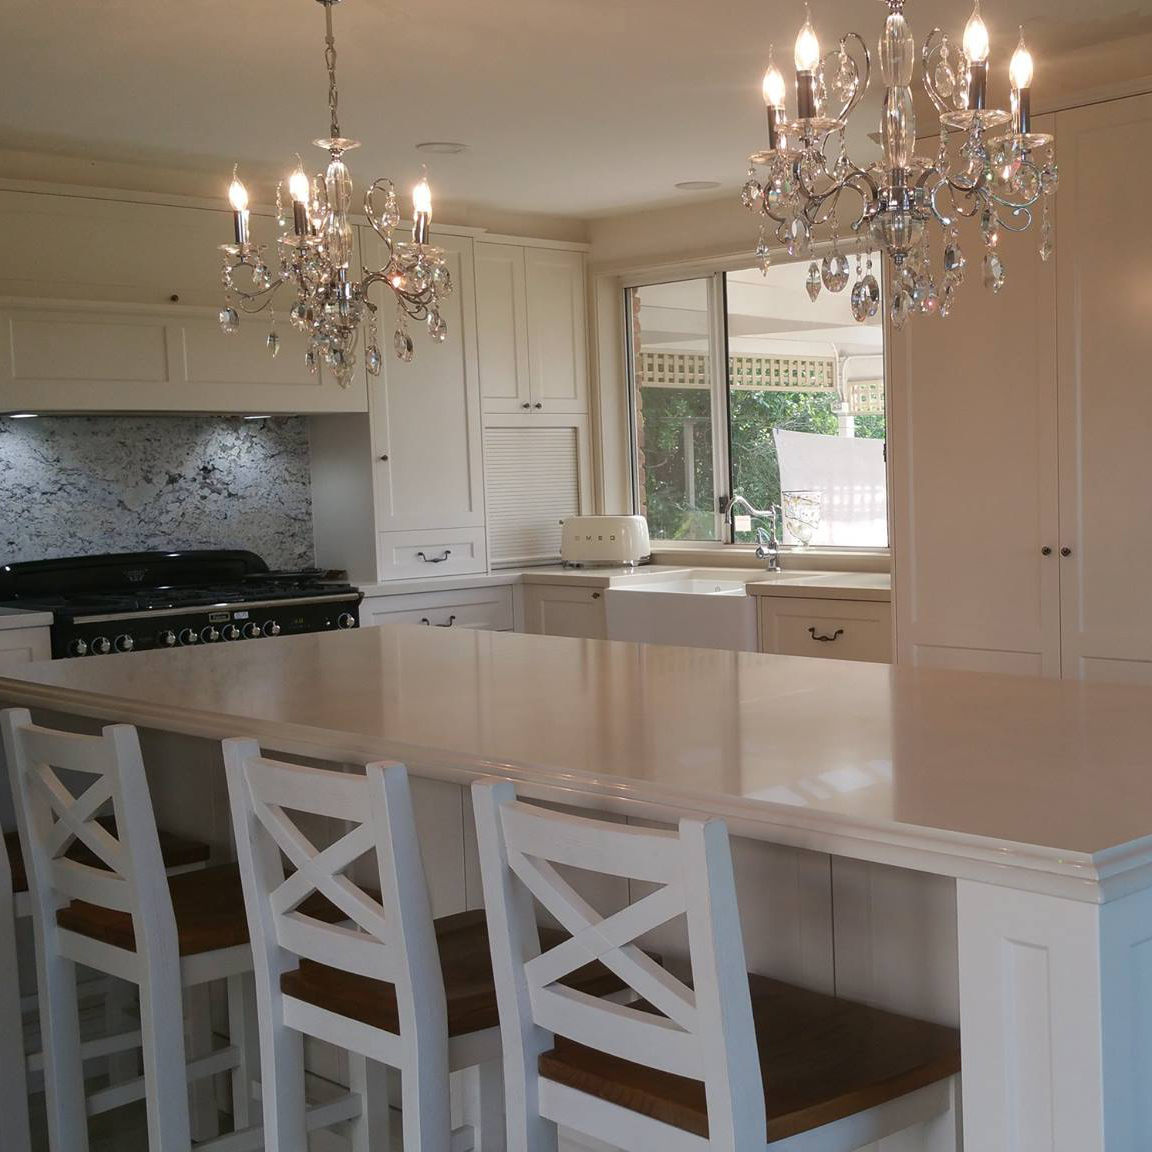 Kitchens, Ovens & Cooktops